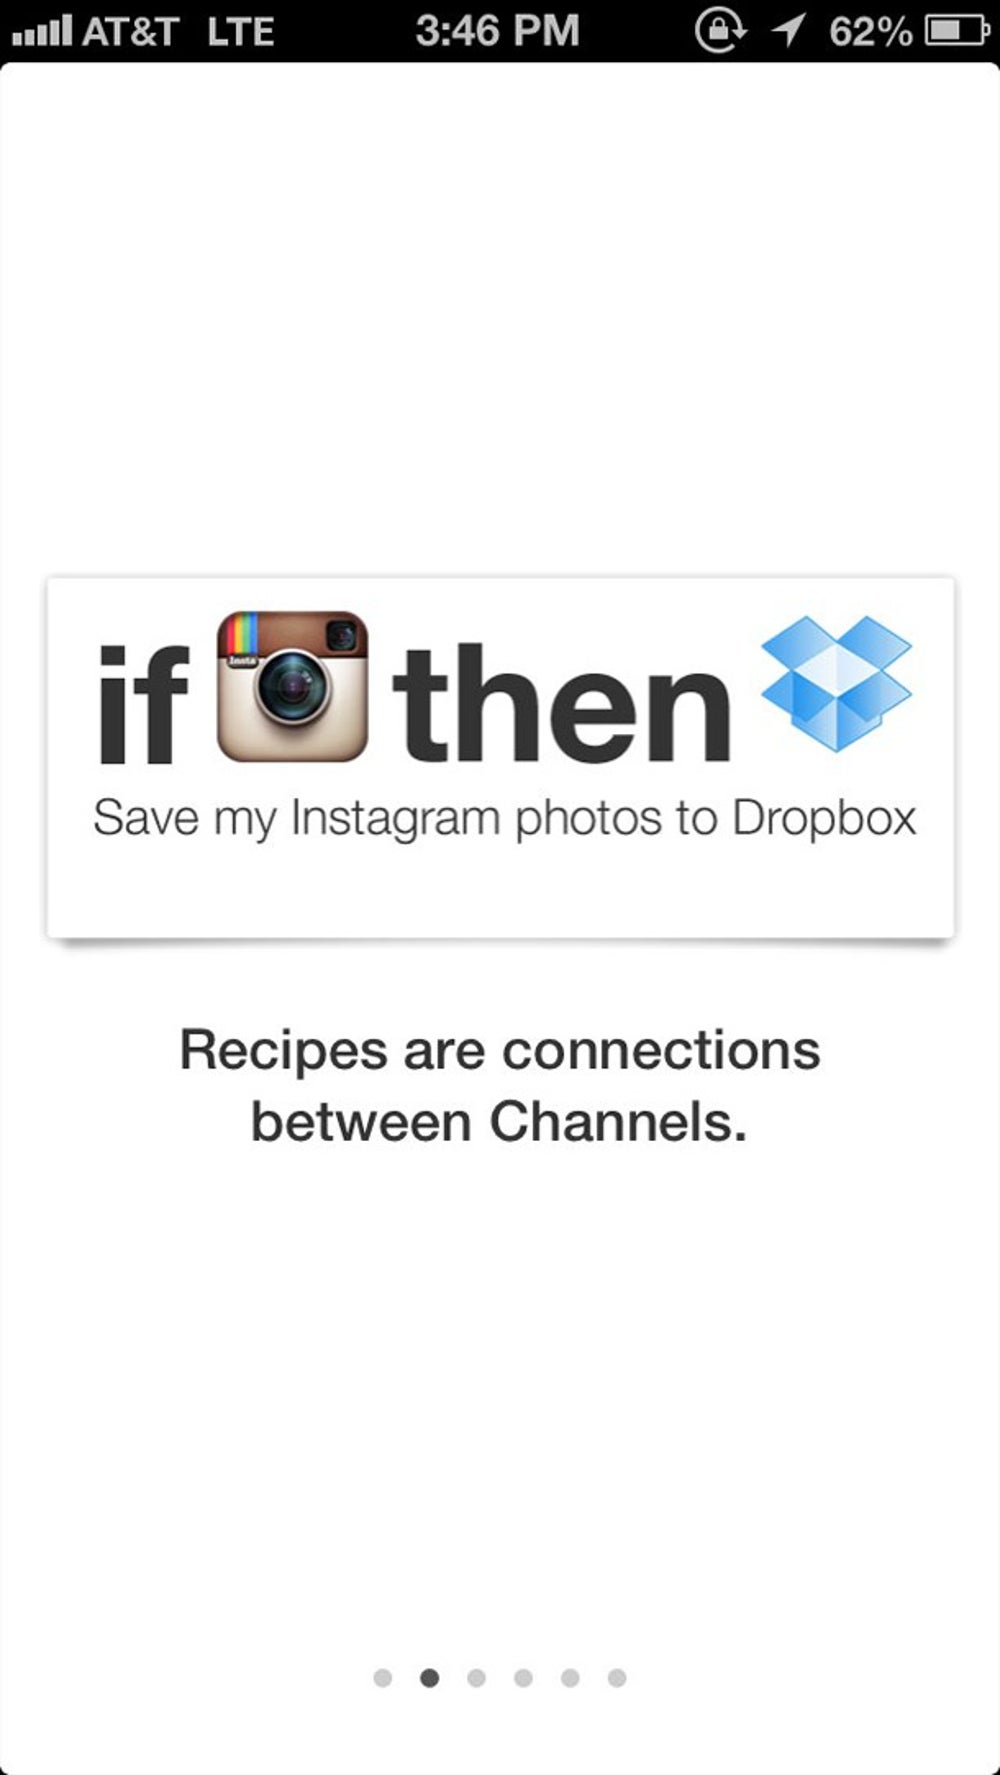 The app allows you to choose recipes that connect different apps and services, called channels. For example, you can choose a recipe that will automatically back up your Instagram photos to Dropbox.